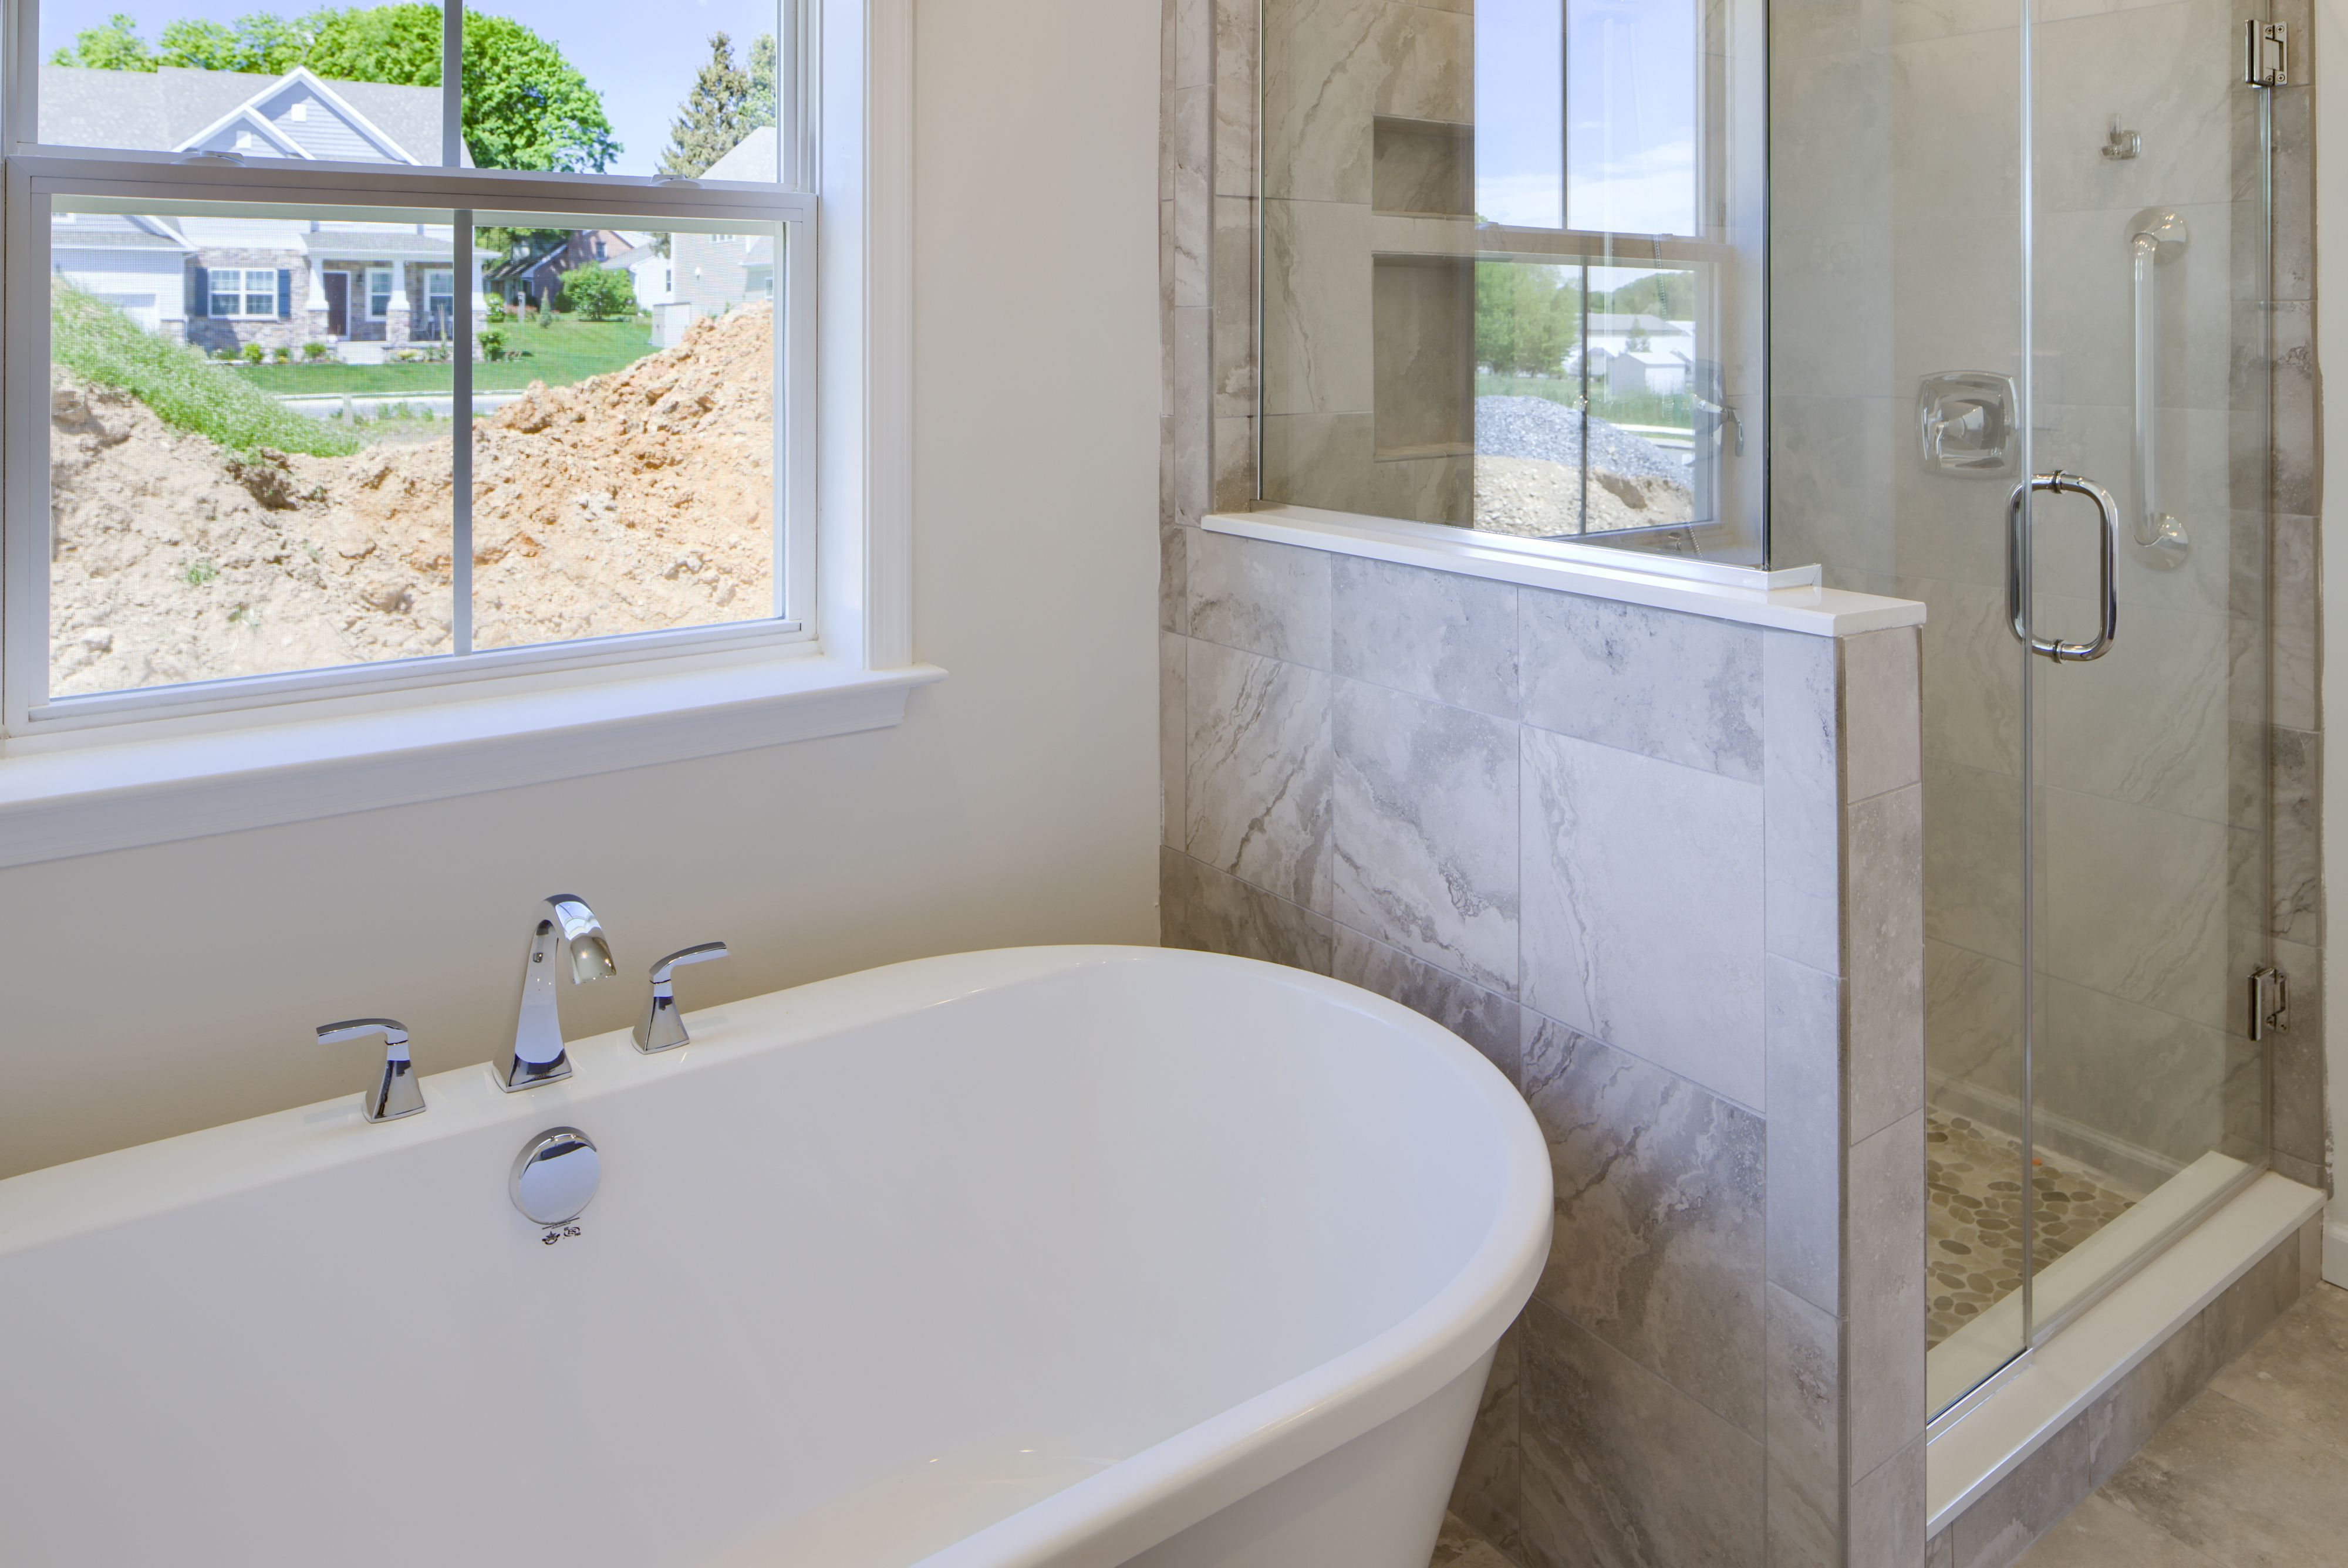 Bathroom featured in the Sycamore Traditional By Keystone Custom Homes in Philadelphia, PA